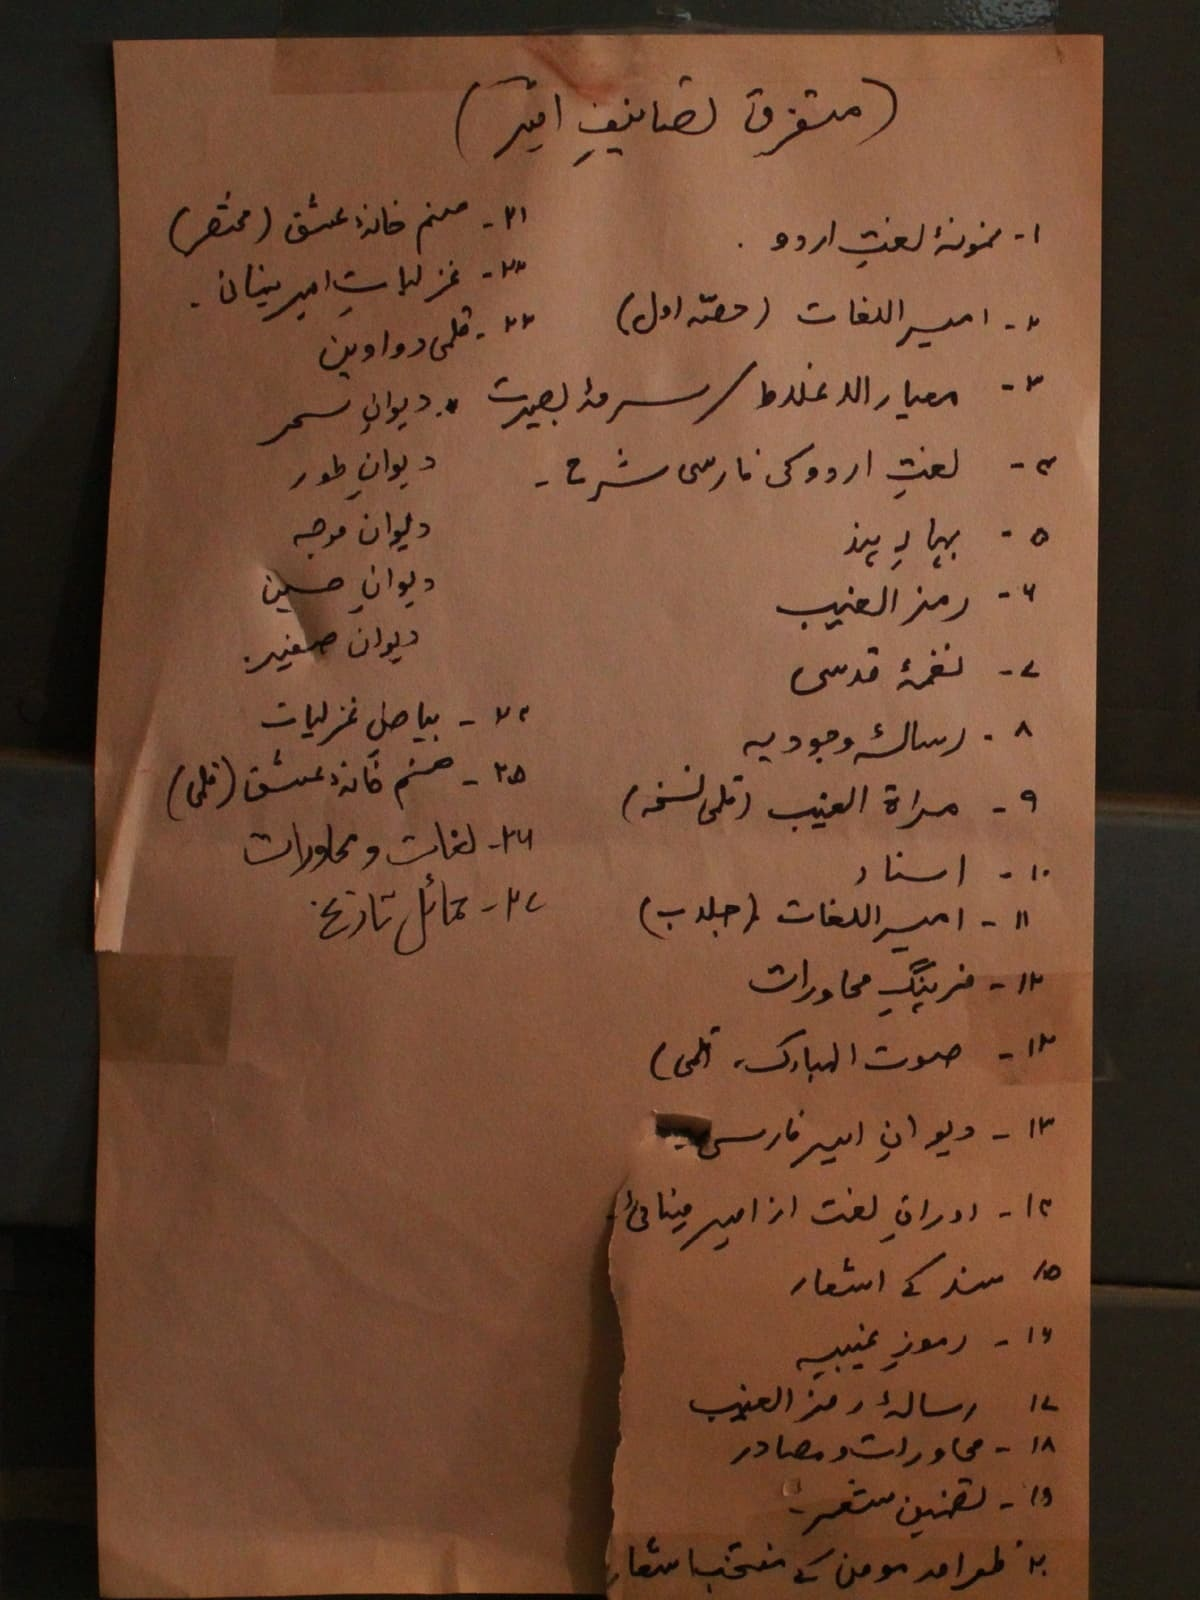 A list of contents pasted inside one of the cupboards in Israil Minai's study